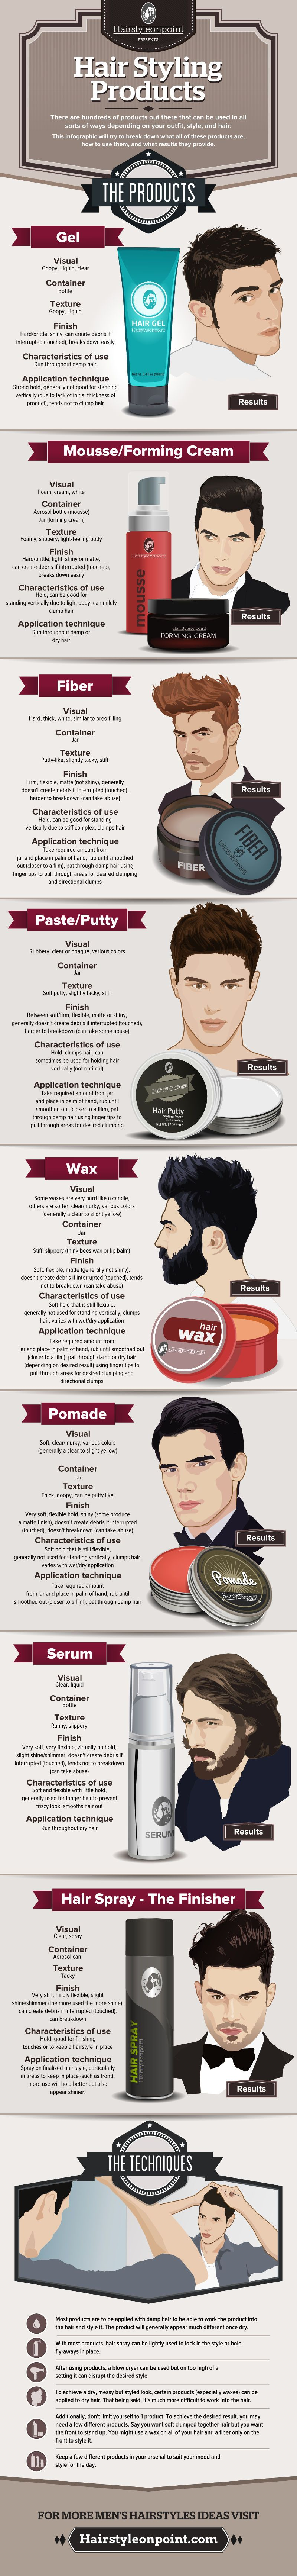 The Complete Guide To Using Male Hair Products Infographic